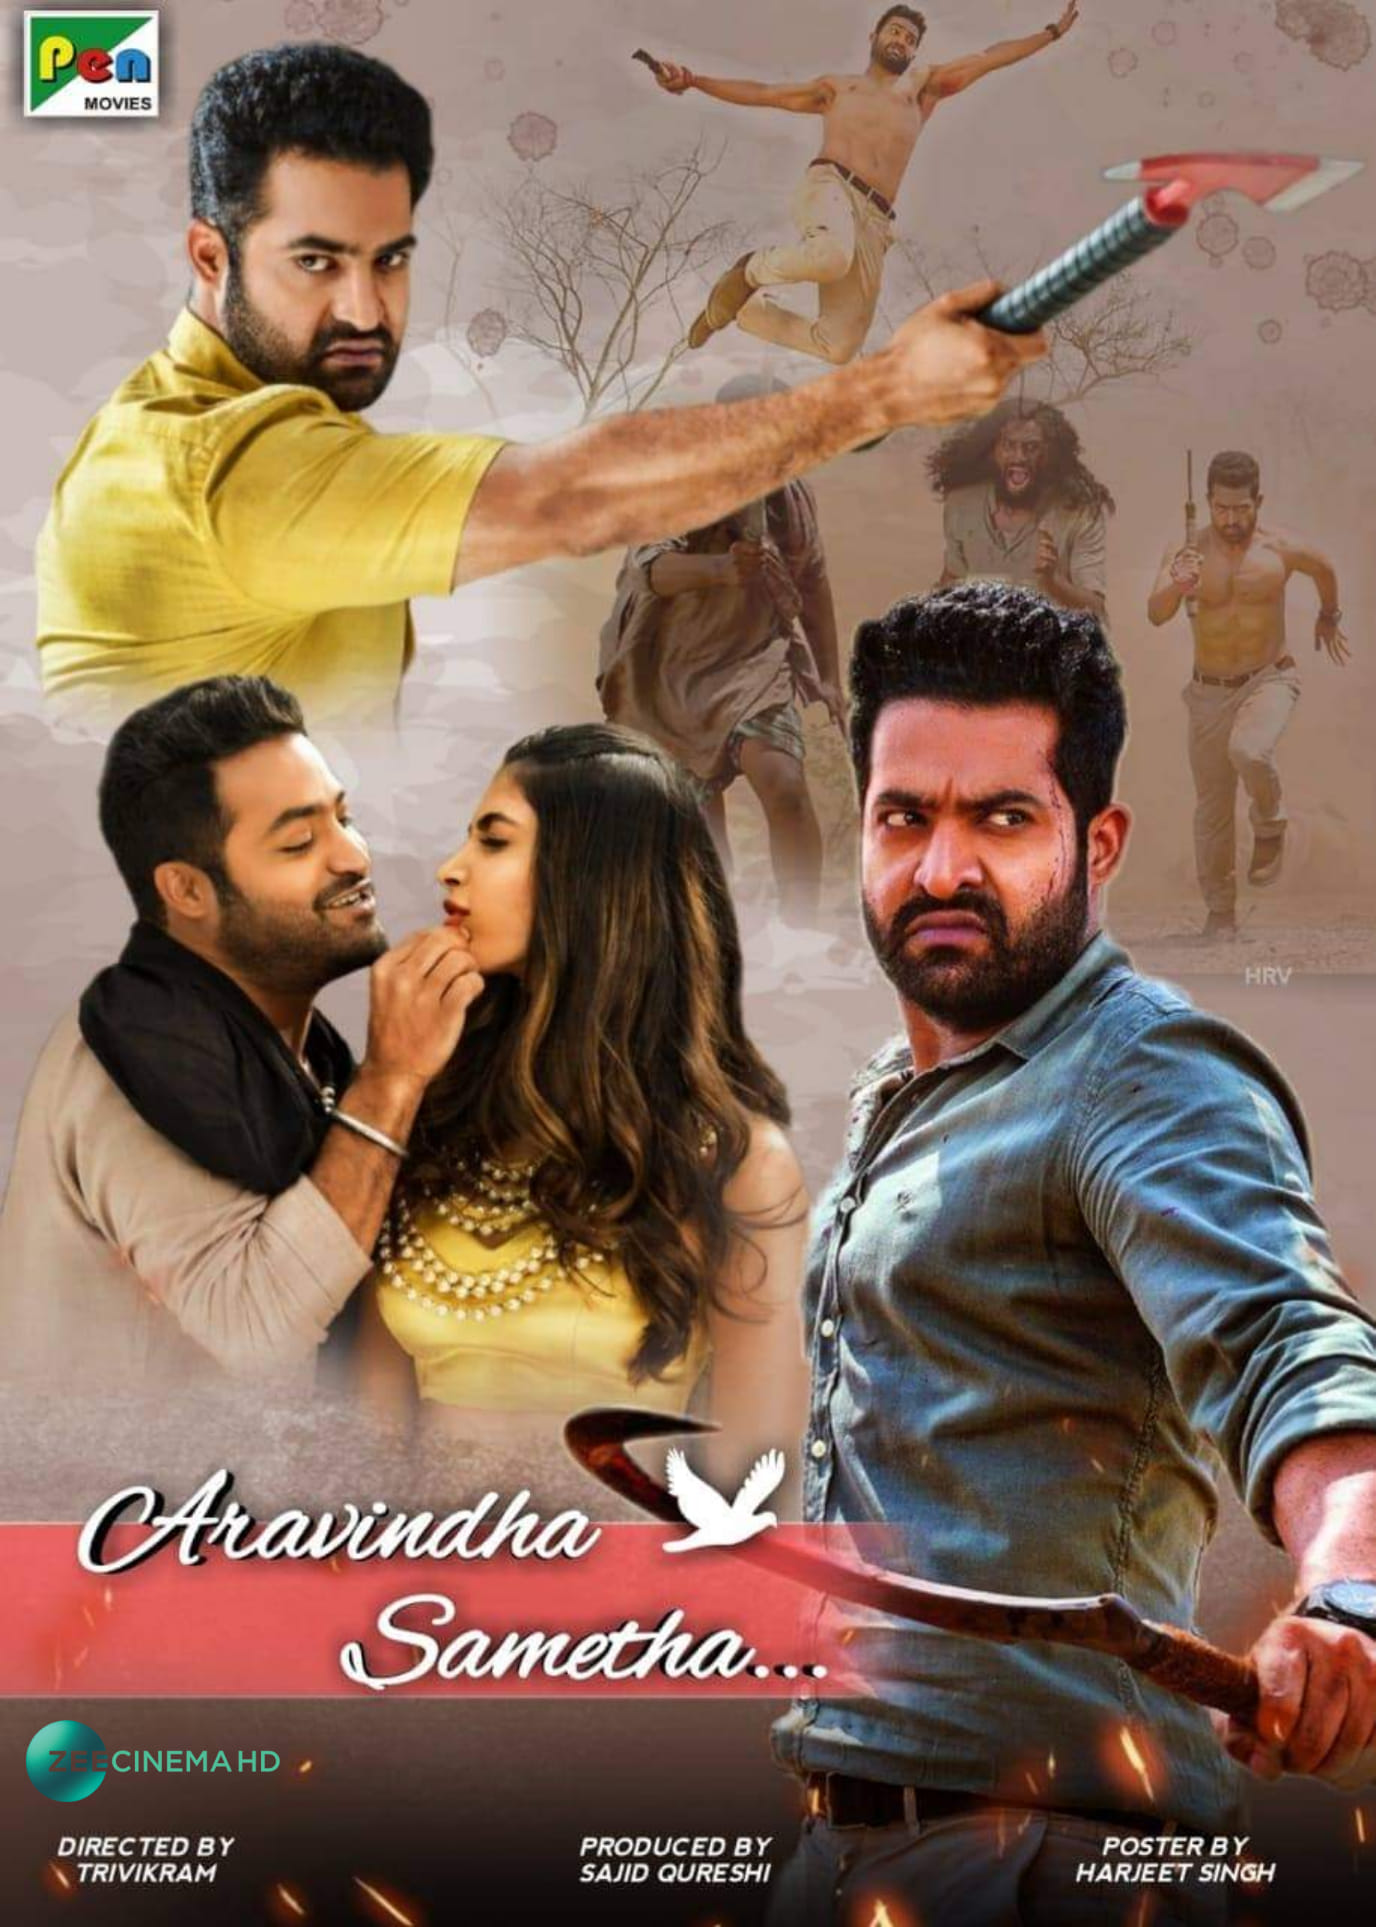 Aravinda Sametha Veera Raghava 2021 Hindi Dubbed 720p WEBRip 800MB Download